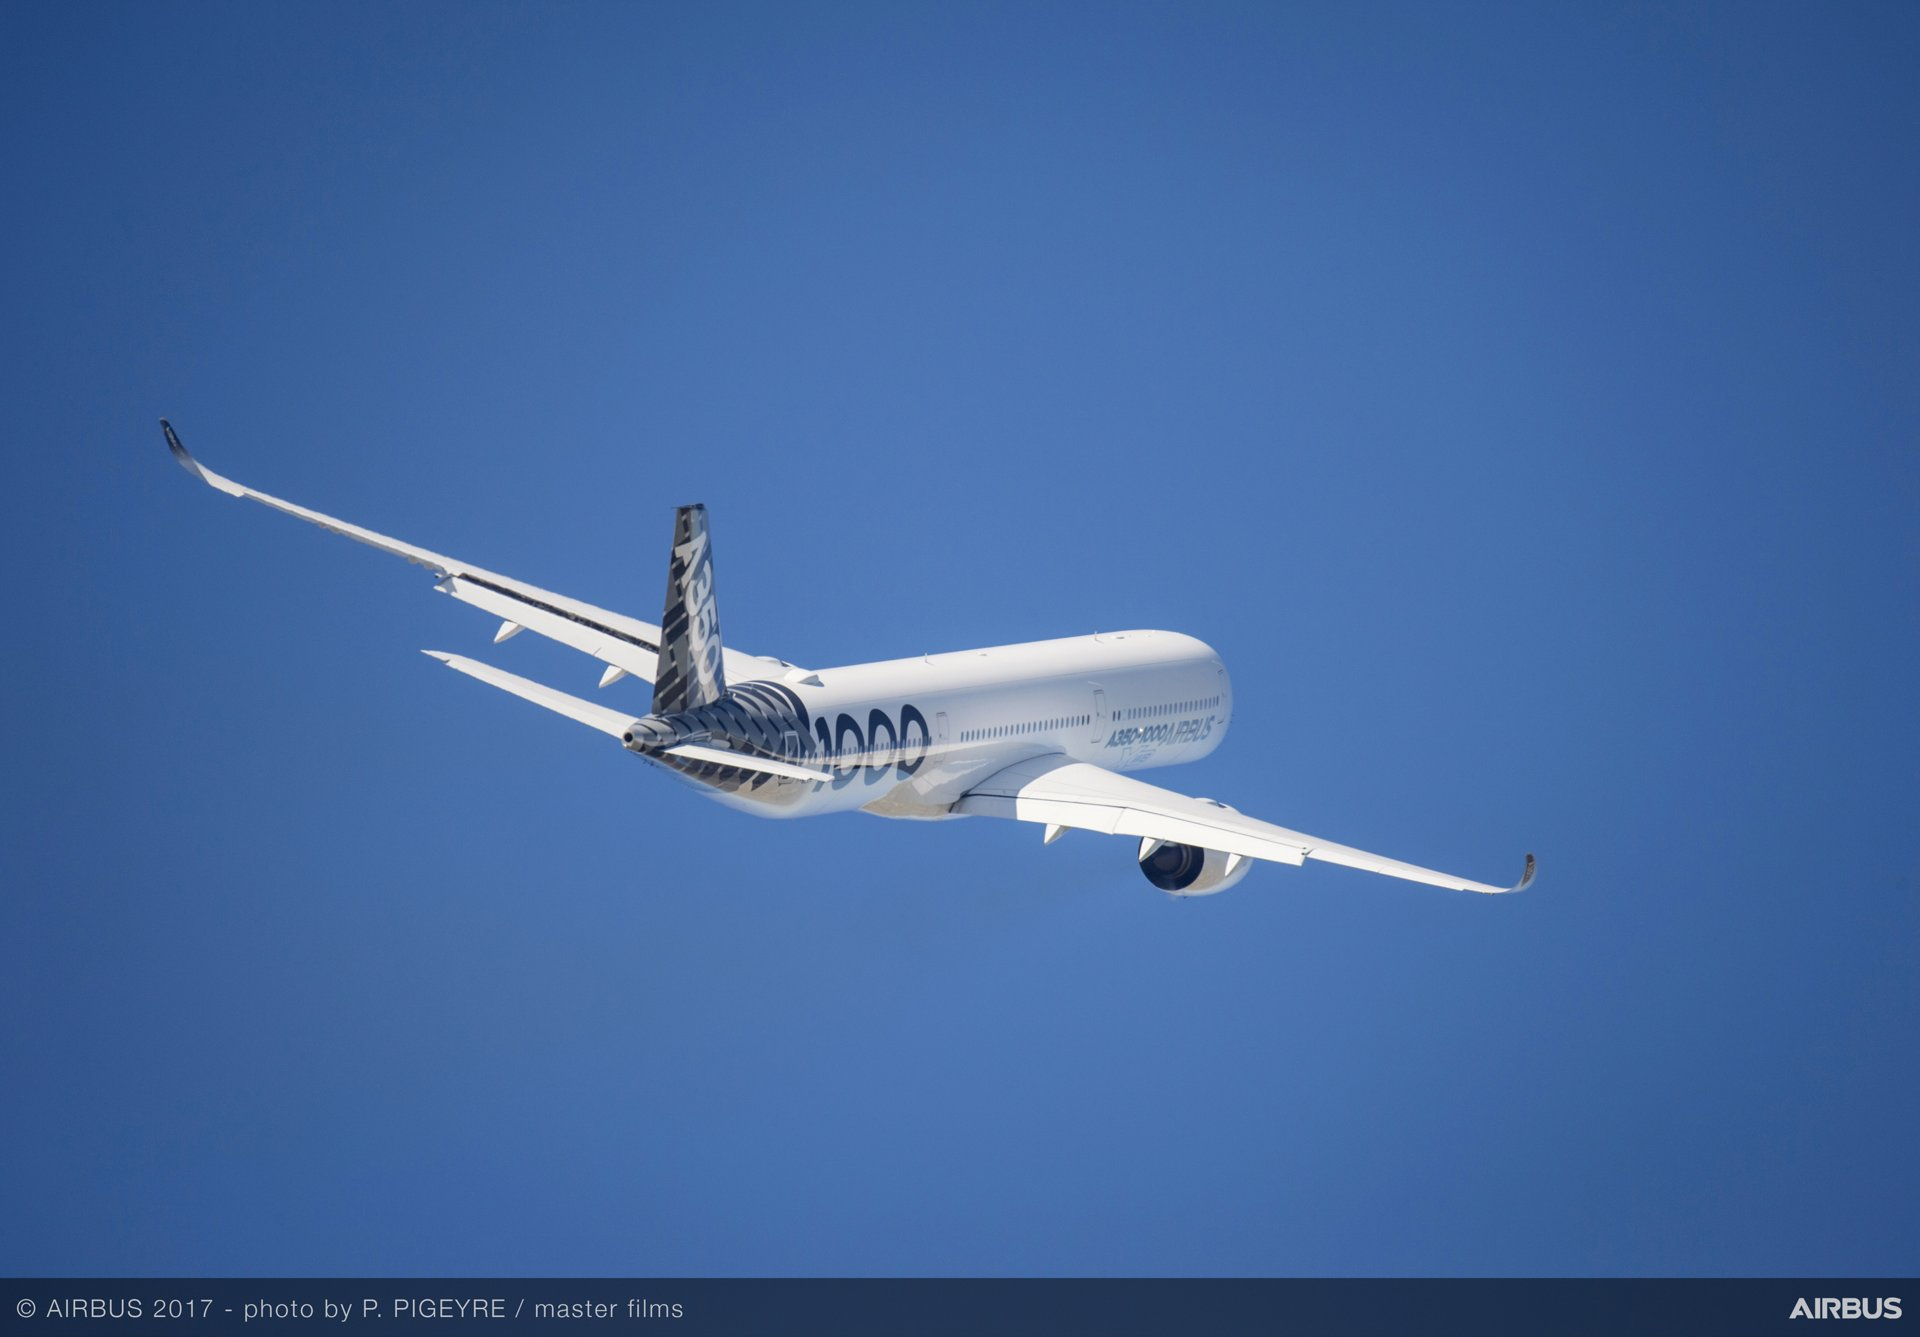 A350-1000 Flying Display 19 June PAS 2017